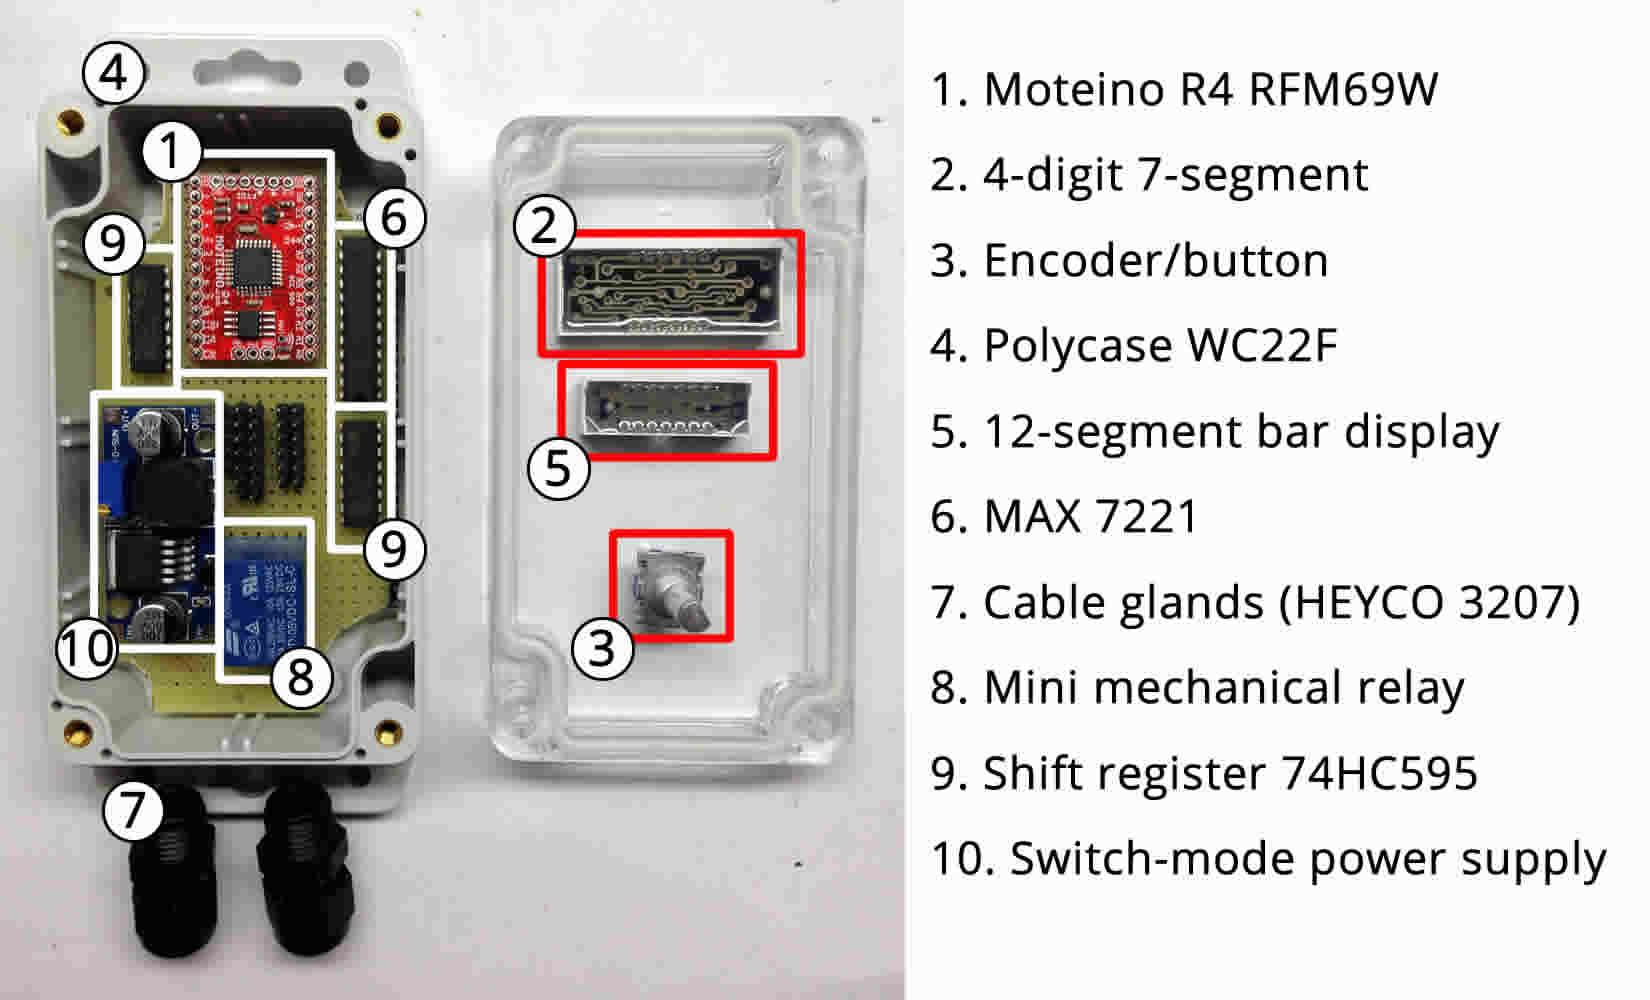 Colin Cupid Controls Page 2 Wiringpi Pull Up Down Layout Of All Components Within Our Enclosure We Dont Use These